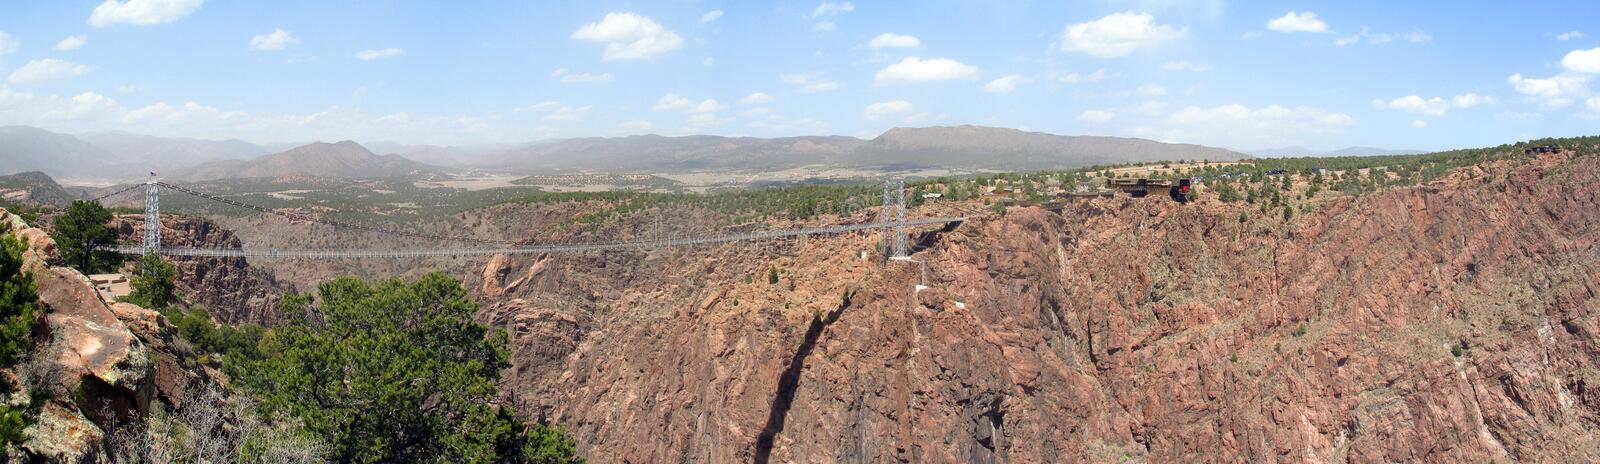 Royal Gorge Bridge. Hanging 1,053 feet above Colorados wild Arkansas River, the Royal Gorge Bridge is the world's highest suspension bridge and a legendary feat stock photo